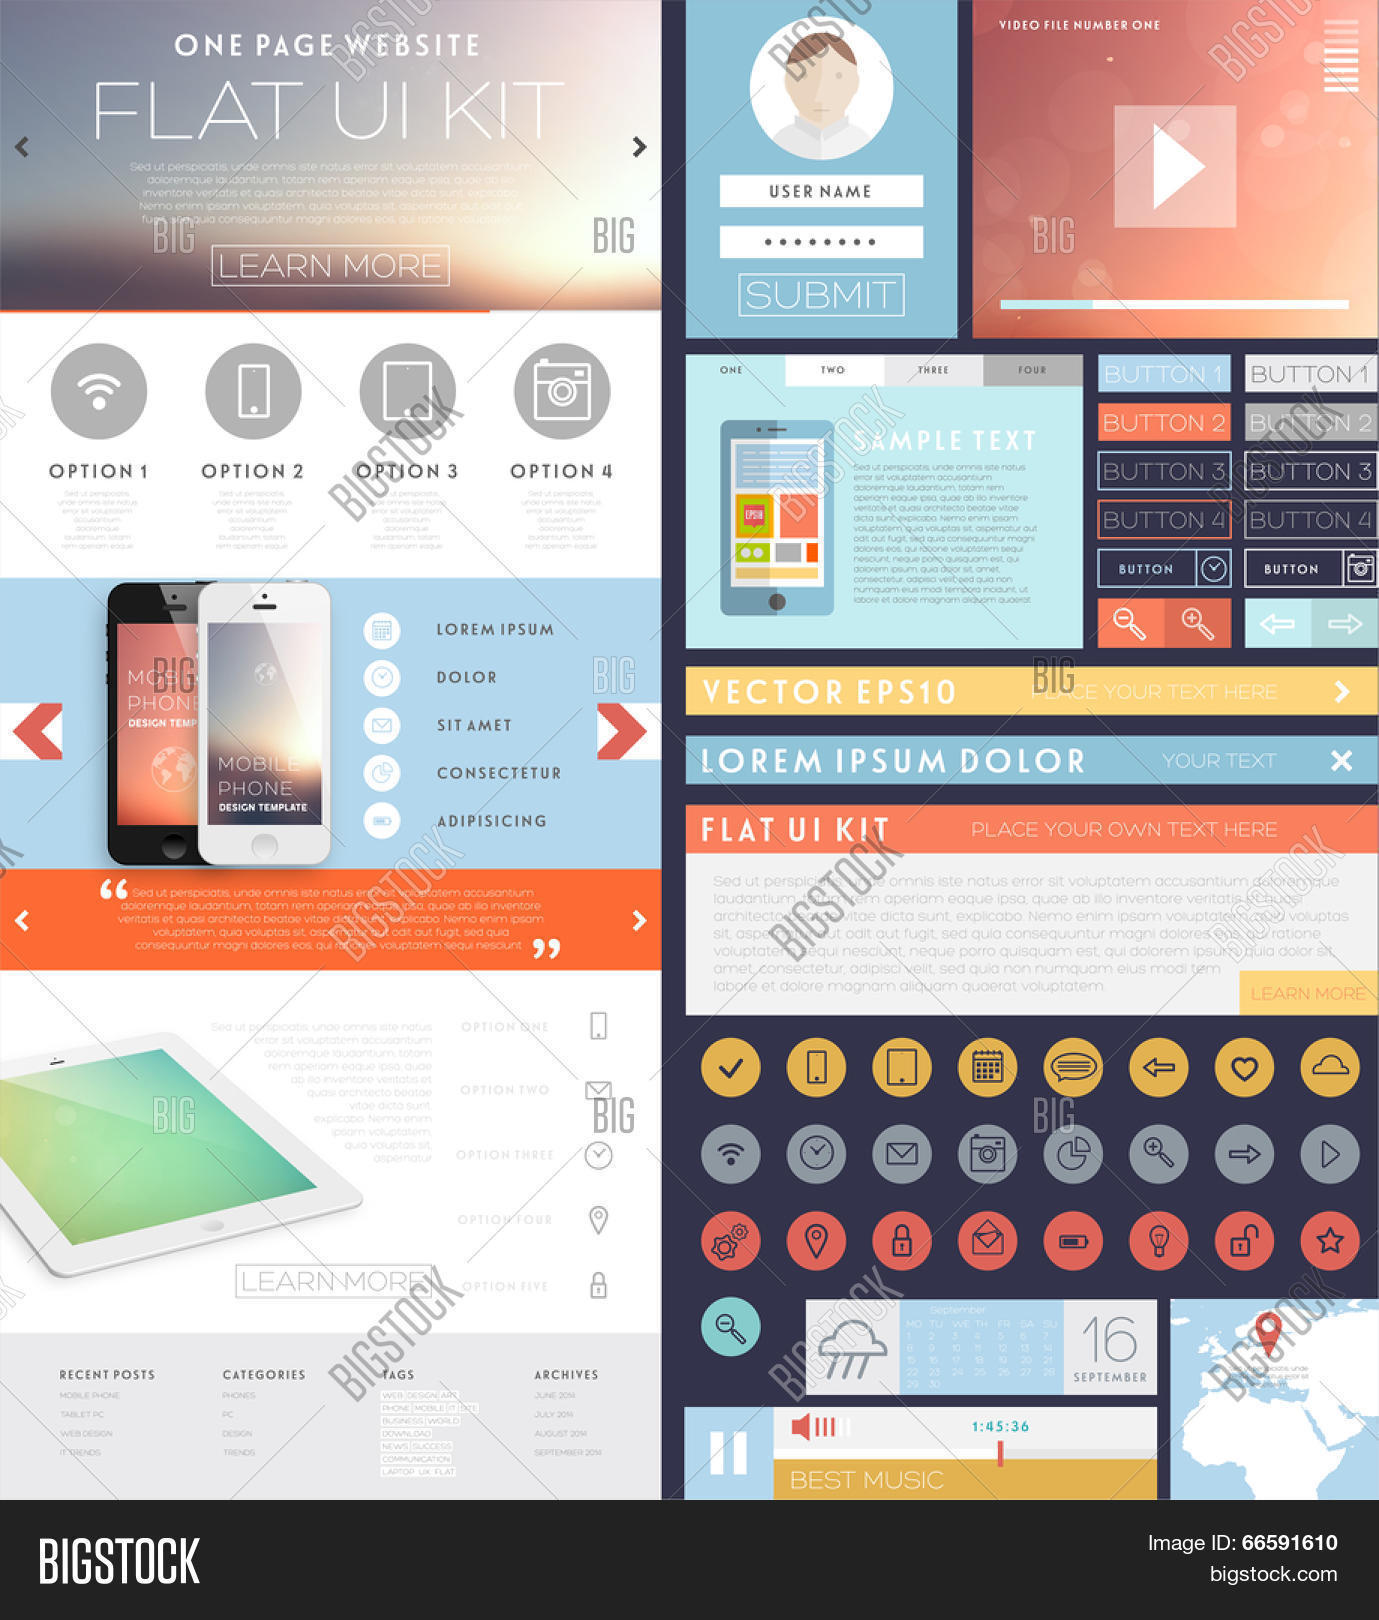 One Page Website Vector & Photo (Free Trial) | Bigstock